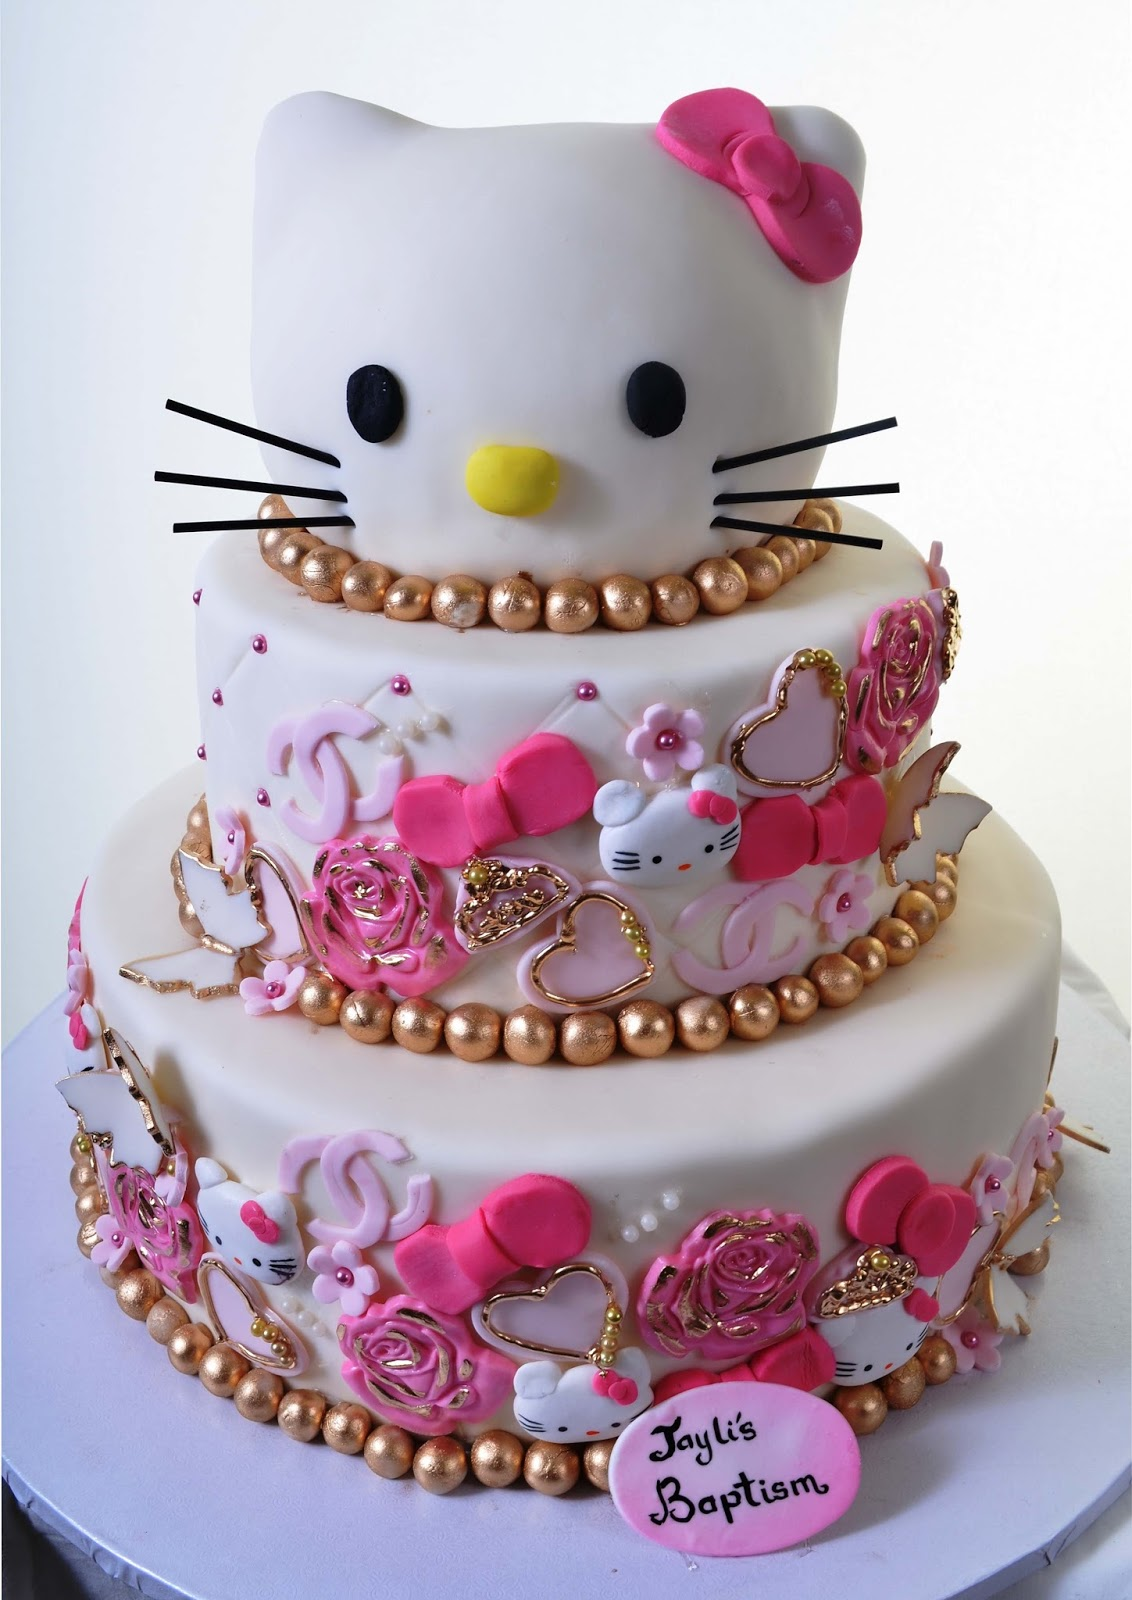 10 Hello Kitty Cake Decorations Ideas